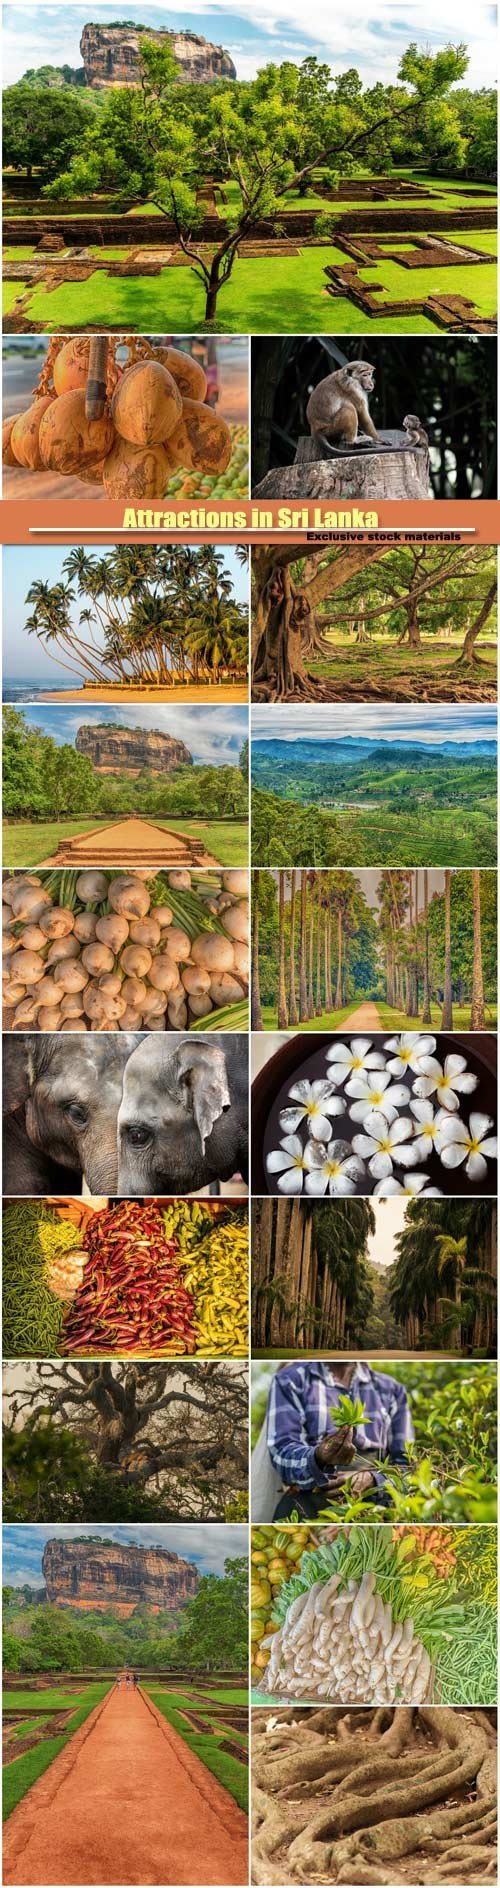 Attractions in Sri Lanka, people, animals and food